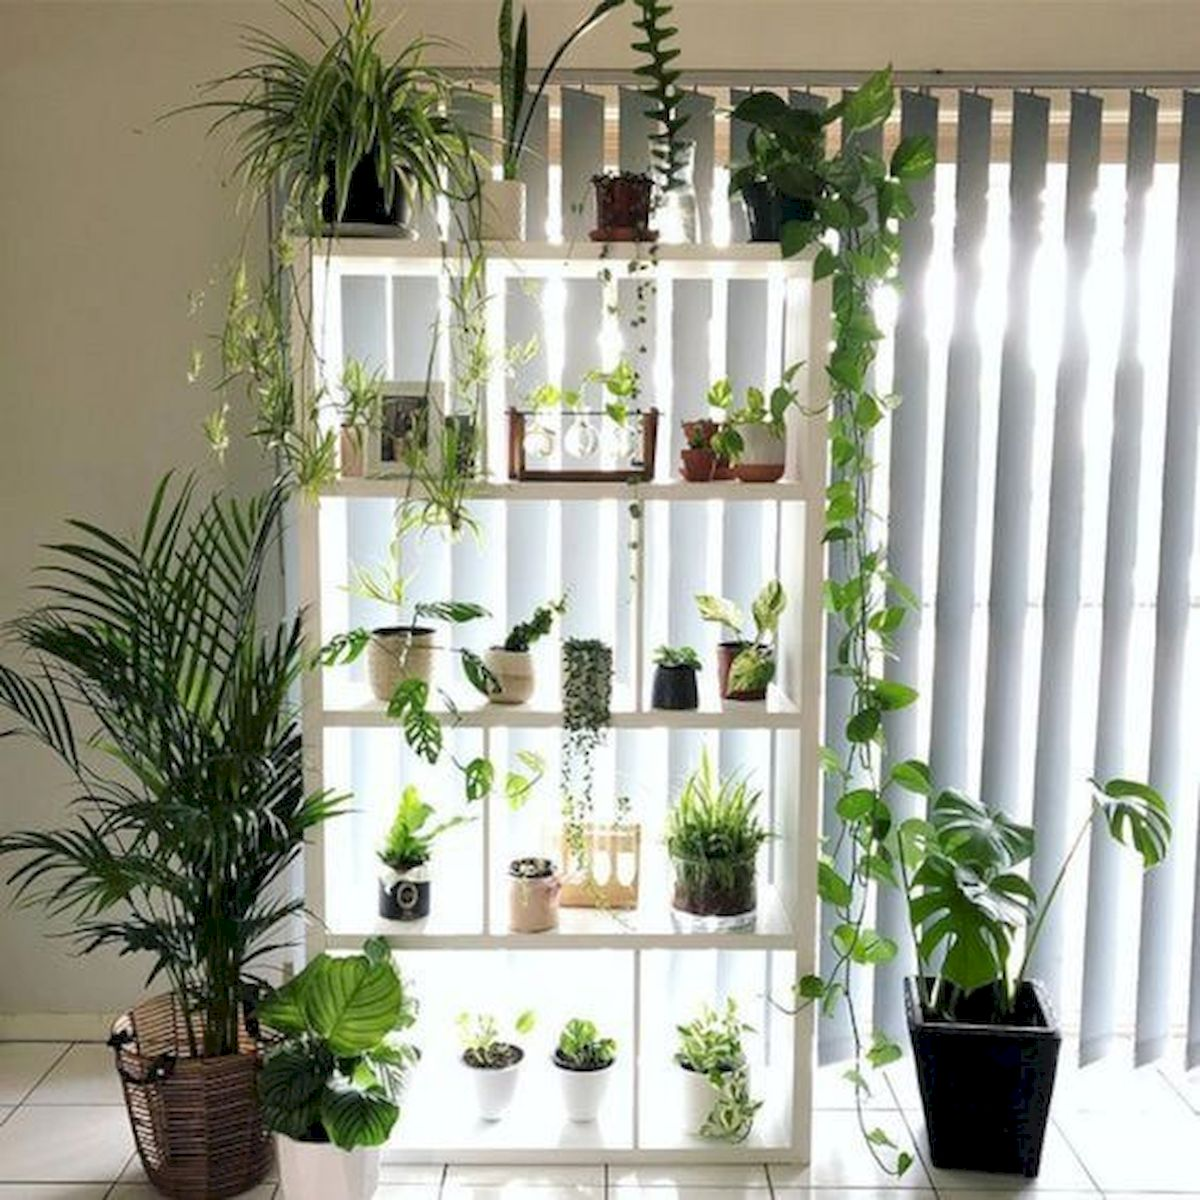 40 Awesome Indoor Garden Design Ideas That Look Beautiful (11)